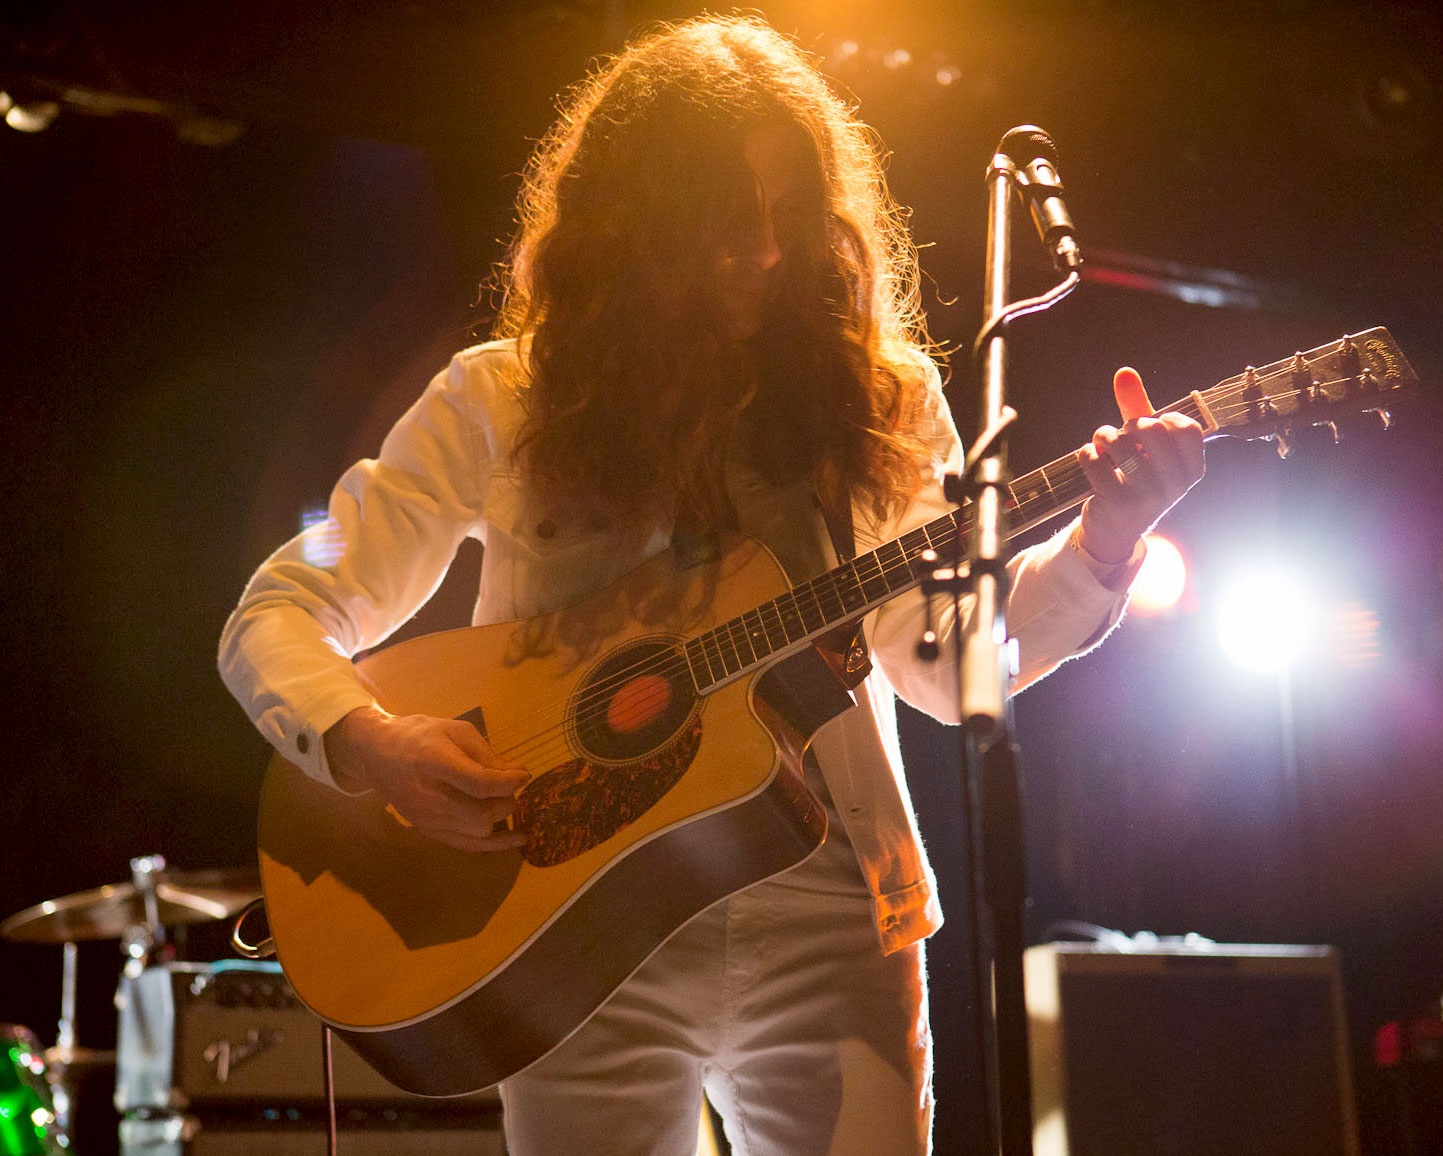 Kurt_Vile_at_echoplex-3